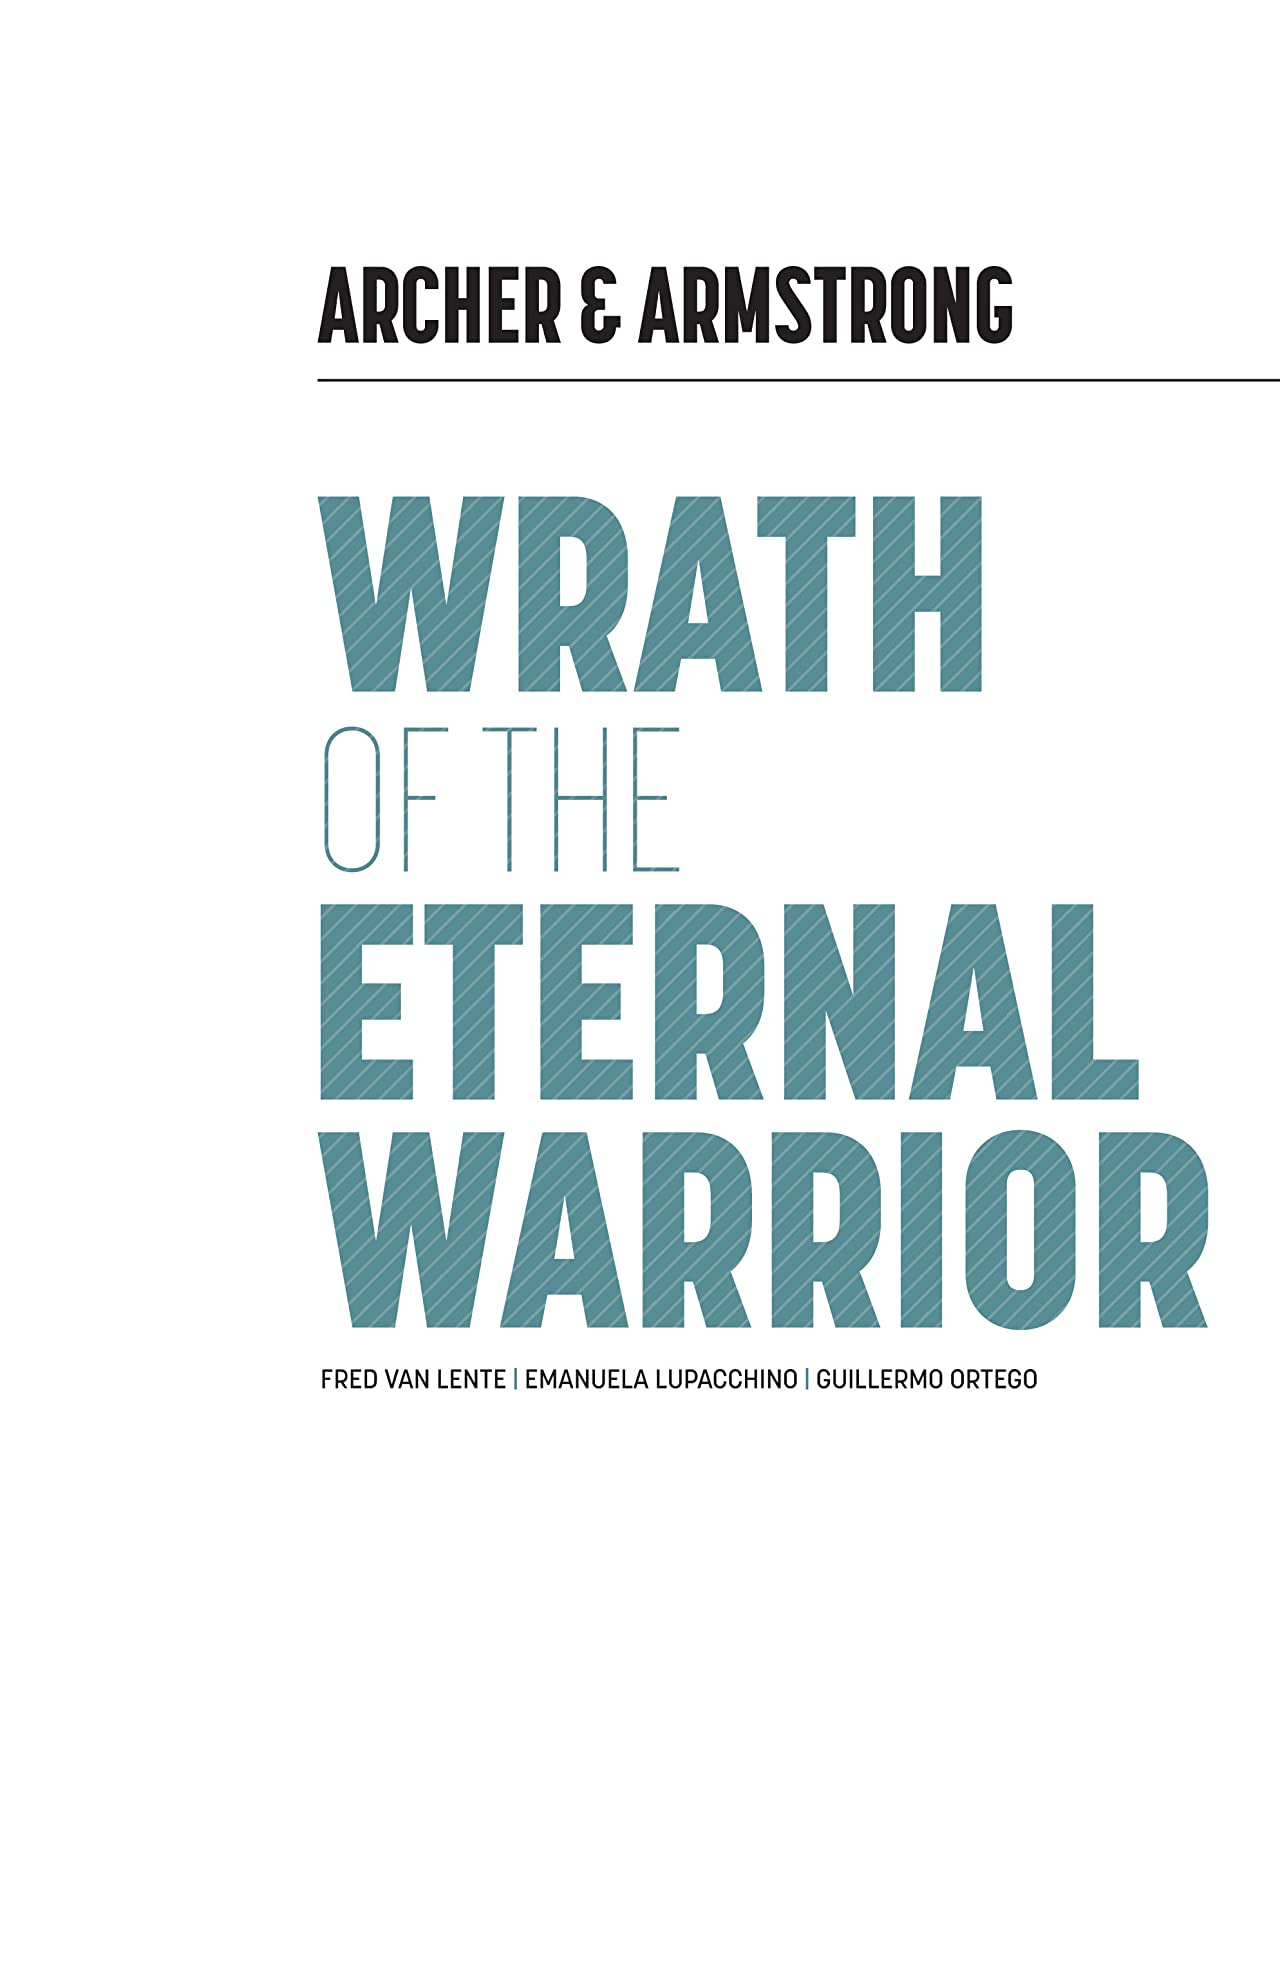 Archer & Armstrong Vol. 2: Wrath Of The Eternal Warrior